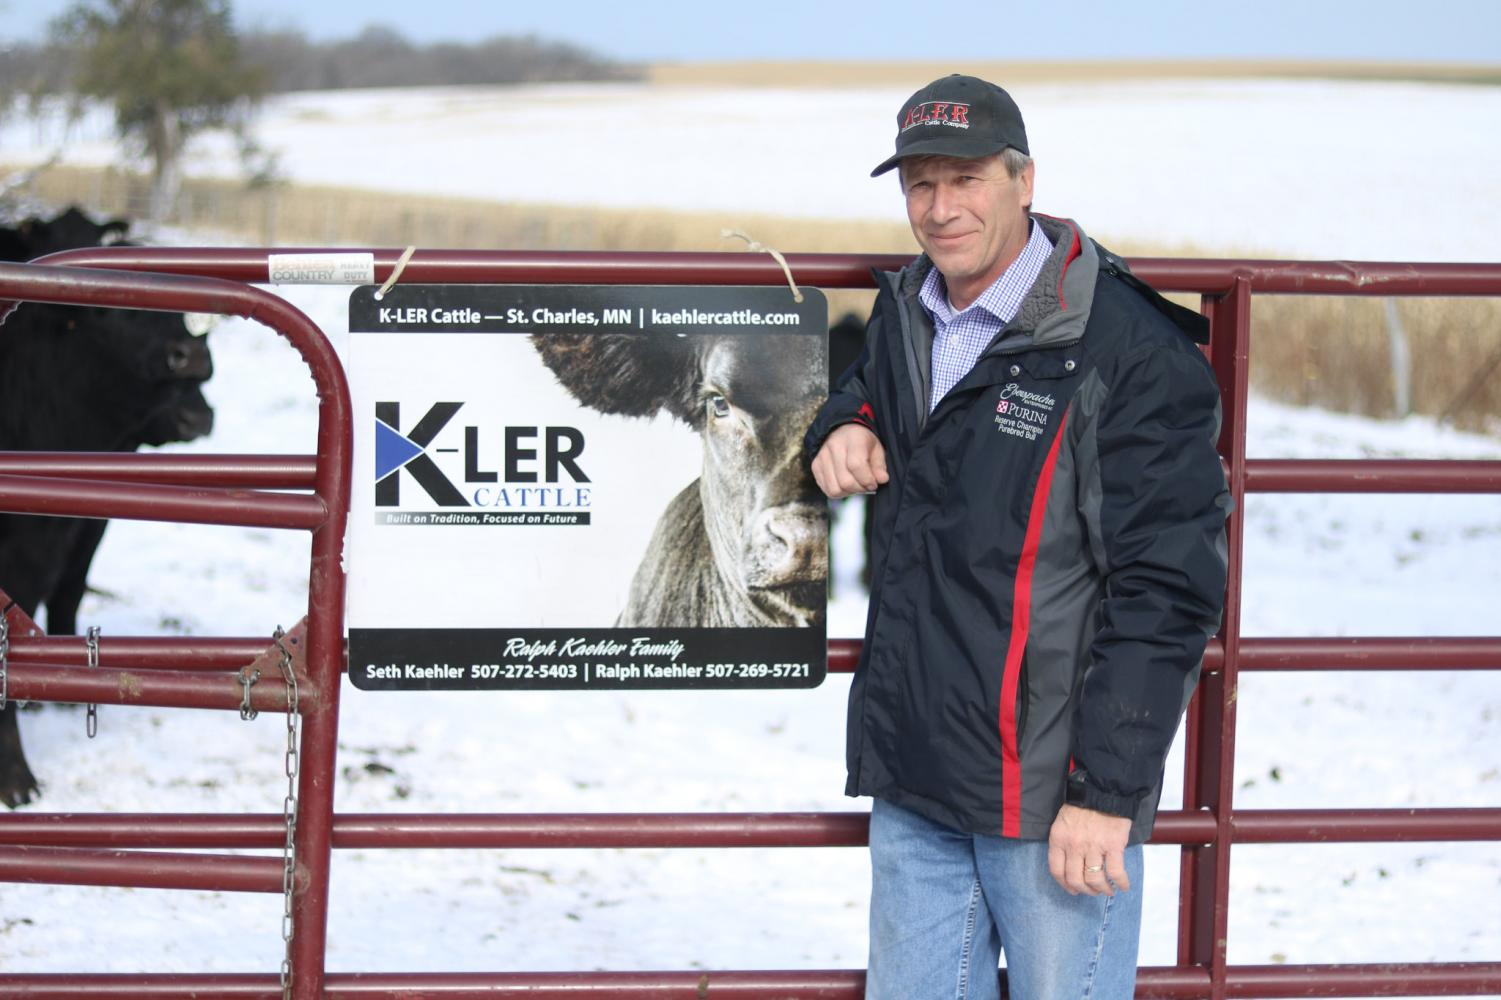 Ralph Kaehler, a Democratic candidate for the House of Representatives in Minnesota's First Congressional District, stands on his fourth-generation family farm in St. Charles, Minn.